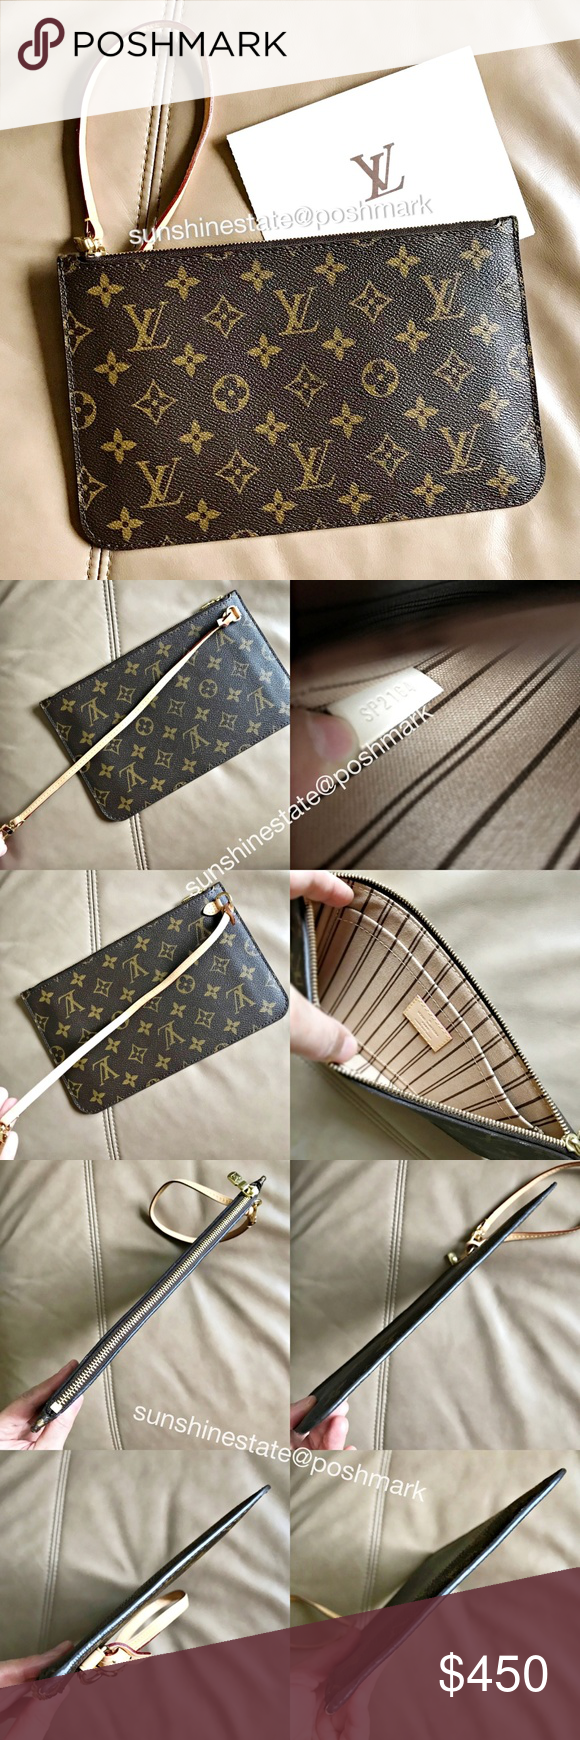 5f16b81db9d Louis Vuitton Neverfull Monogram Pochette France! Rare! Made in France!!  Authentic LV